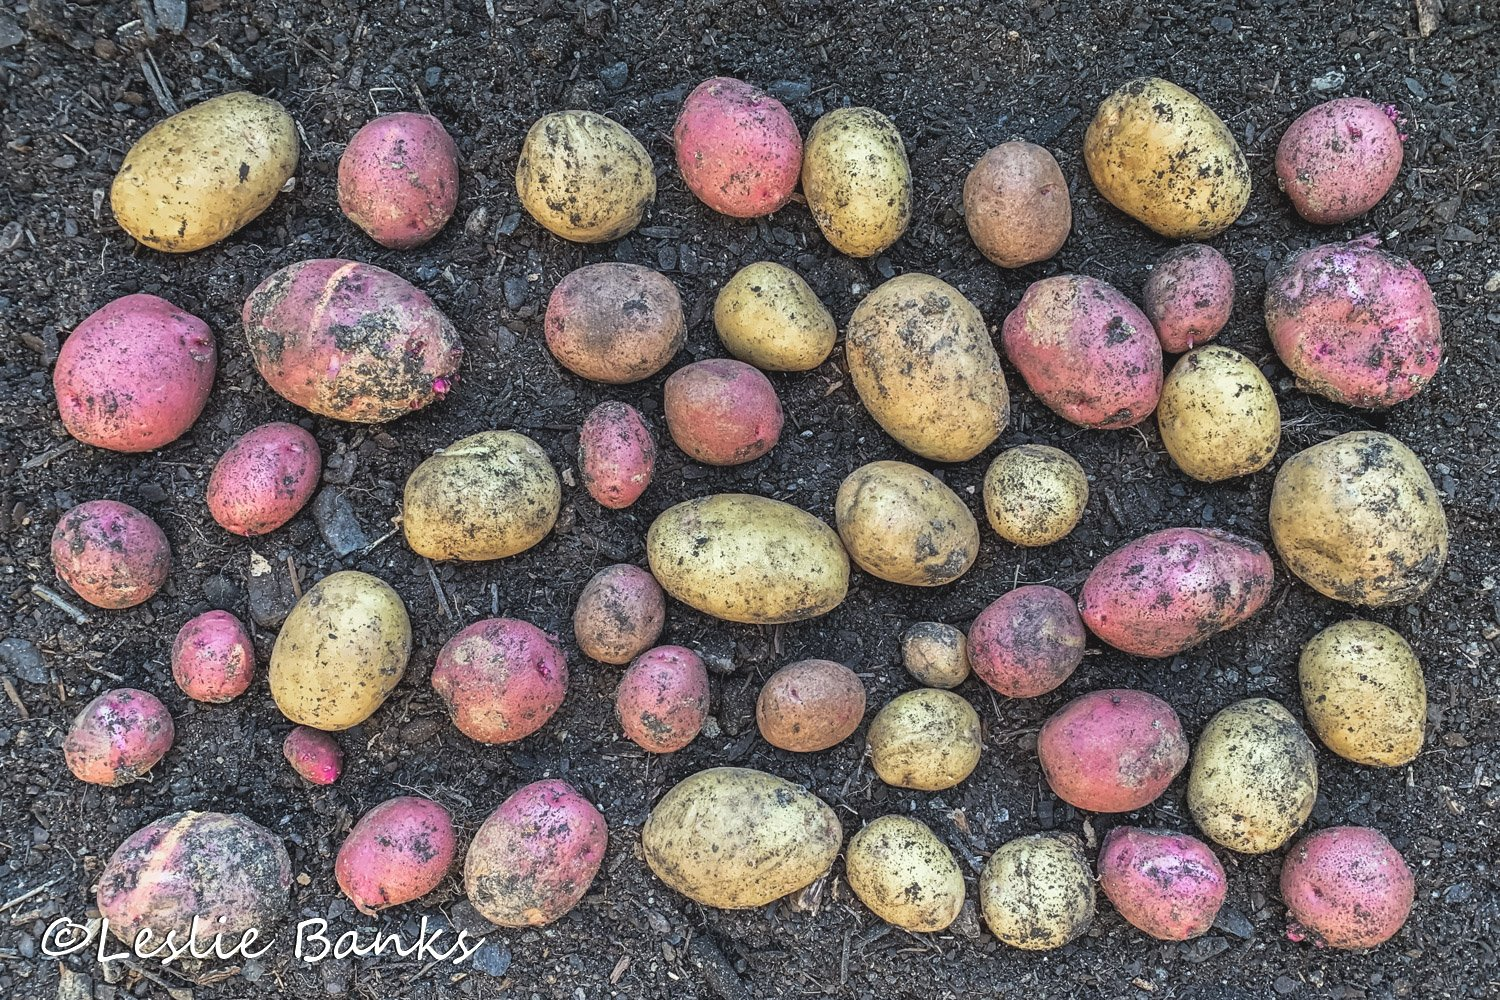 Red and Yellow Potato Harvest